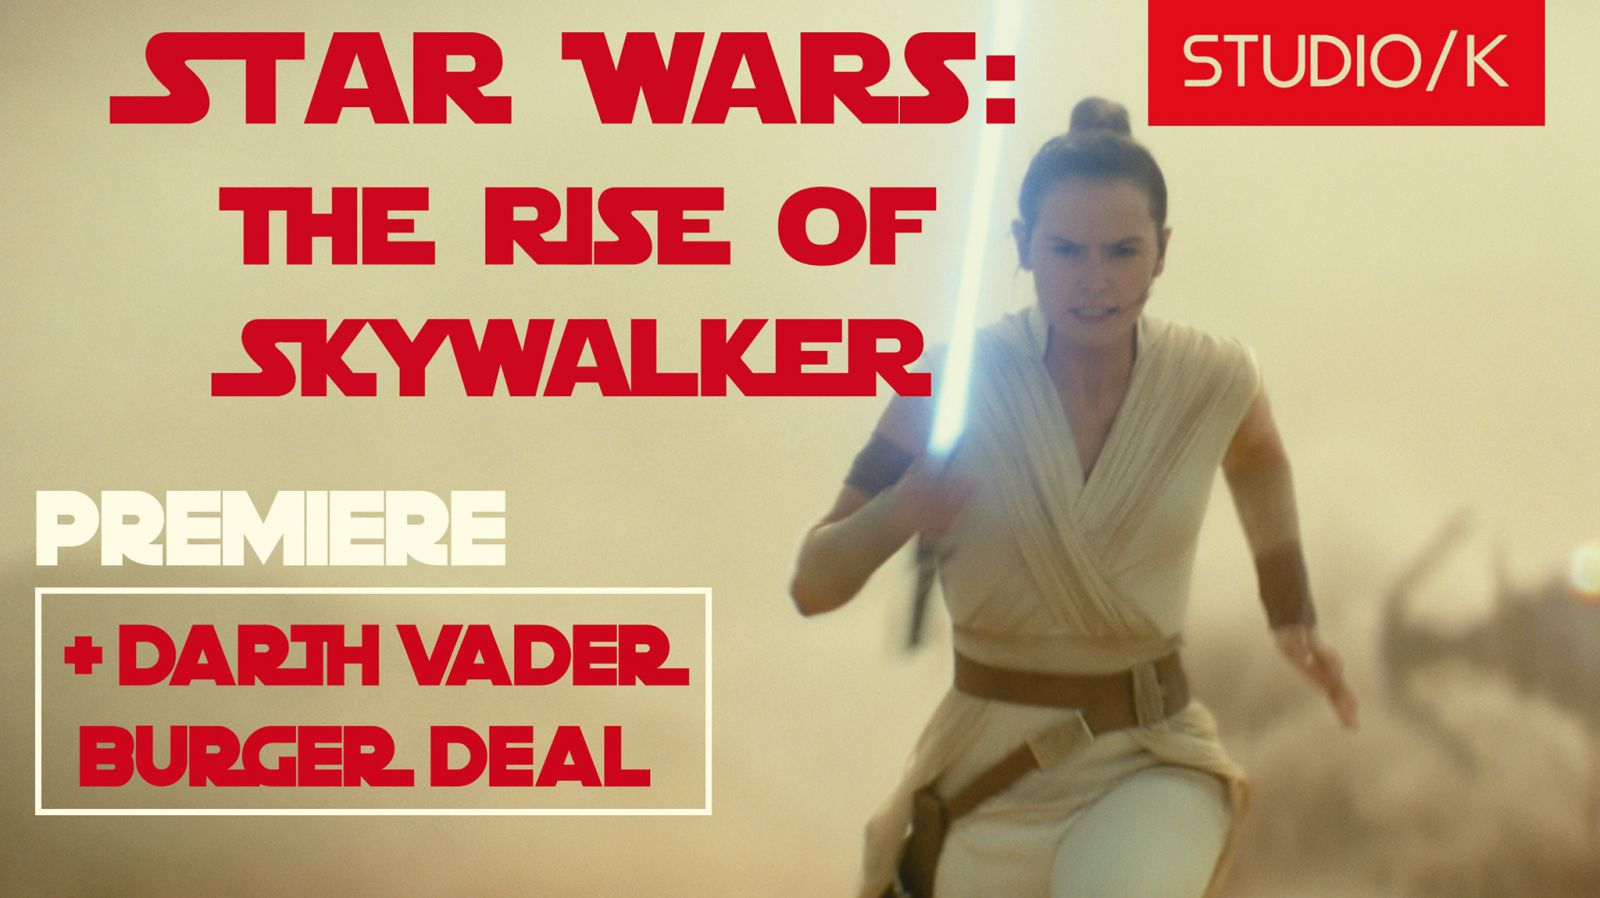 Première // Star Wars: The Rise of Skywalker